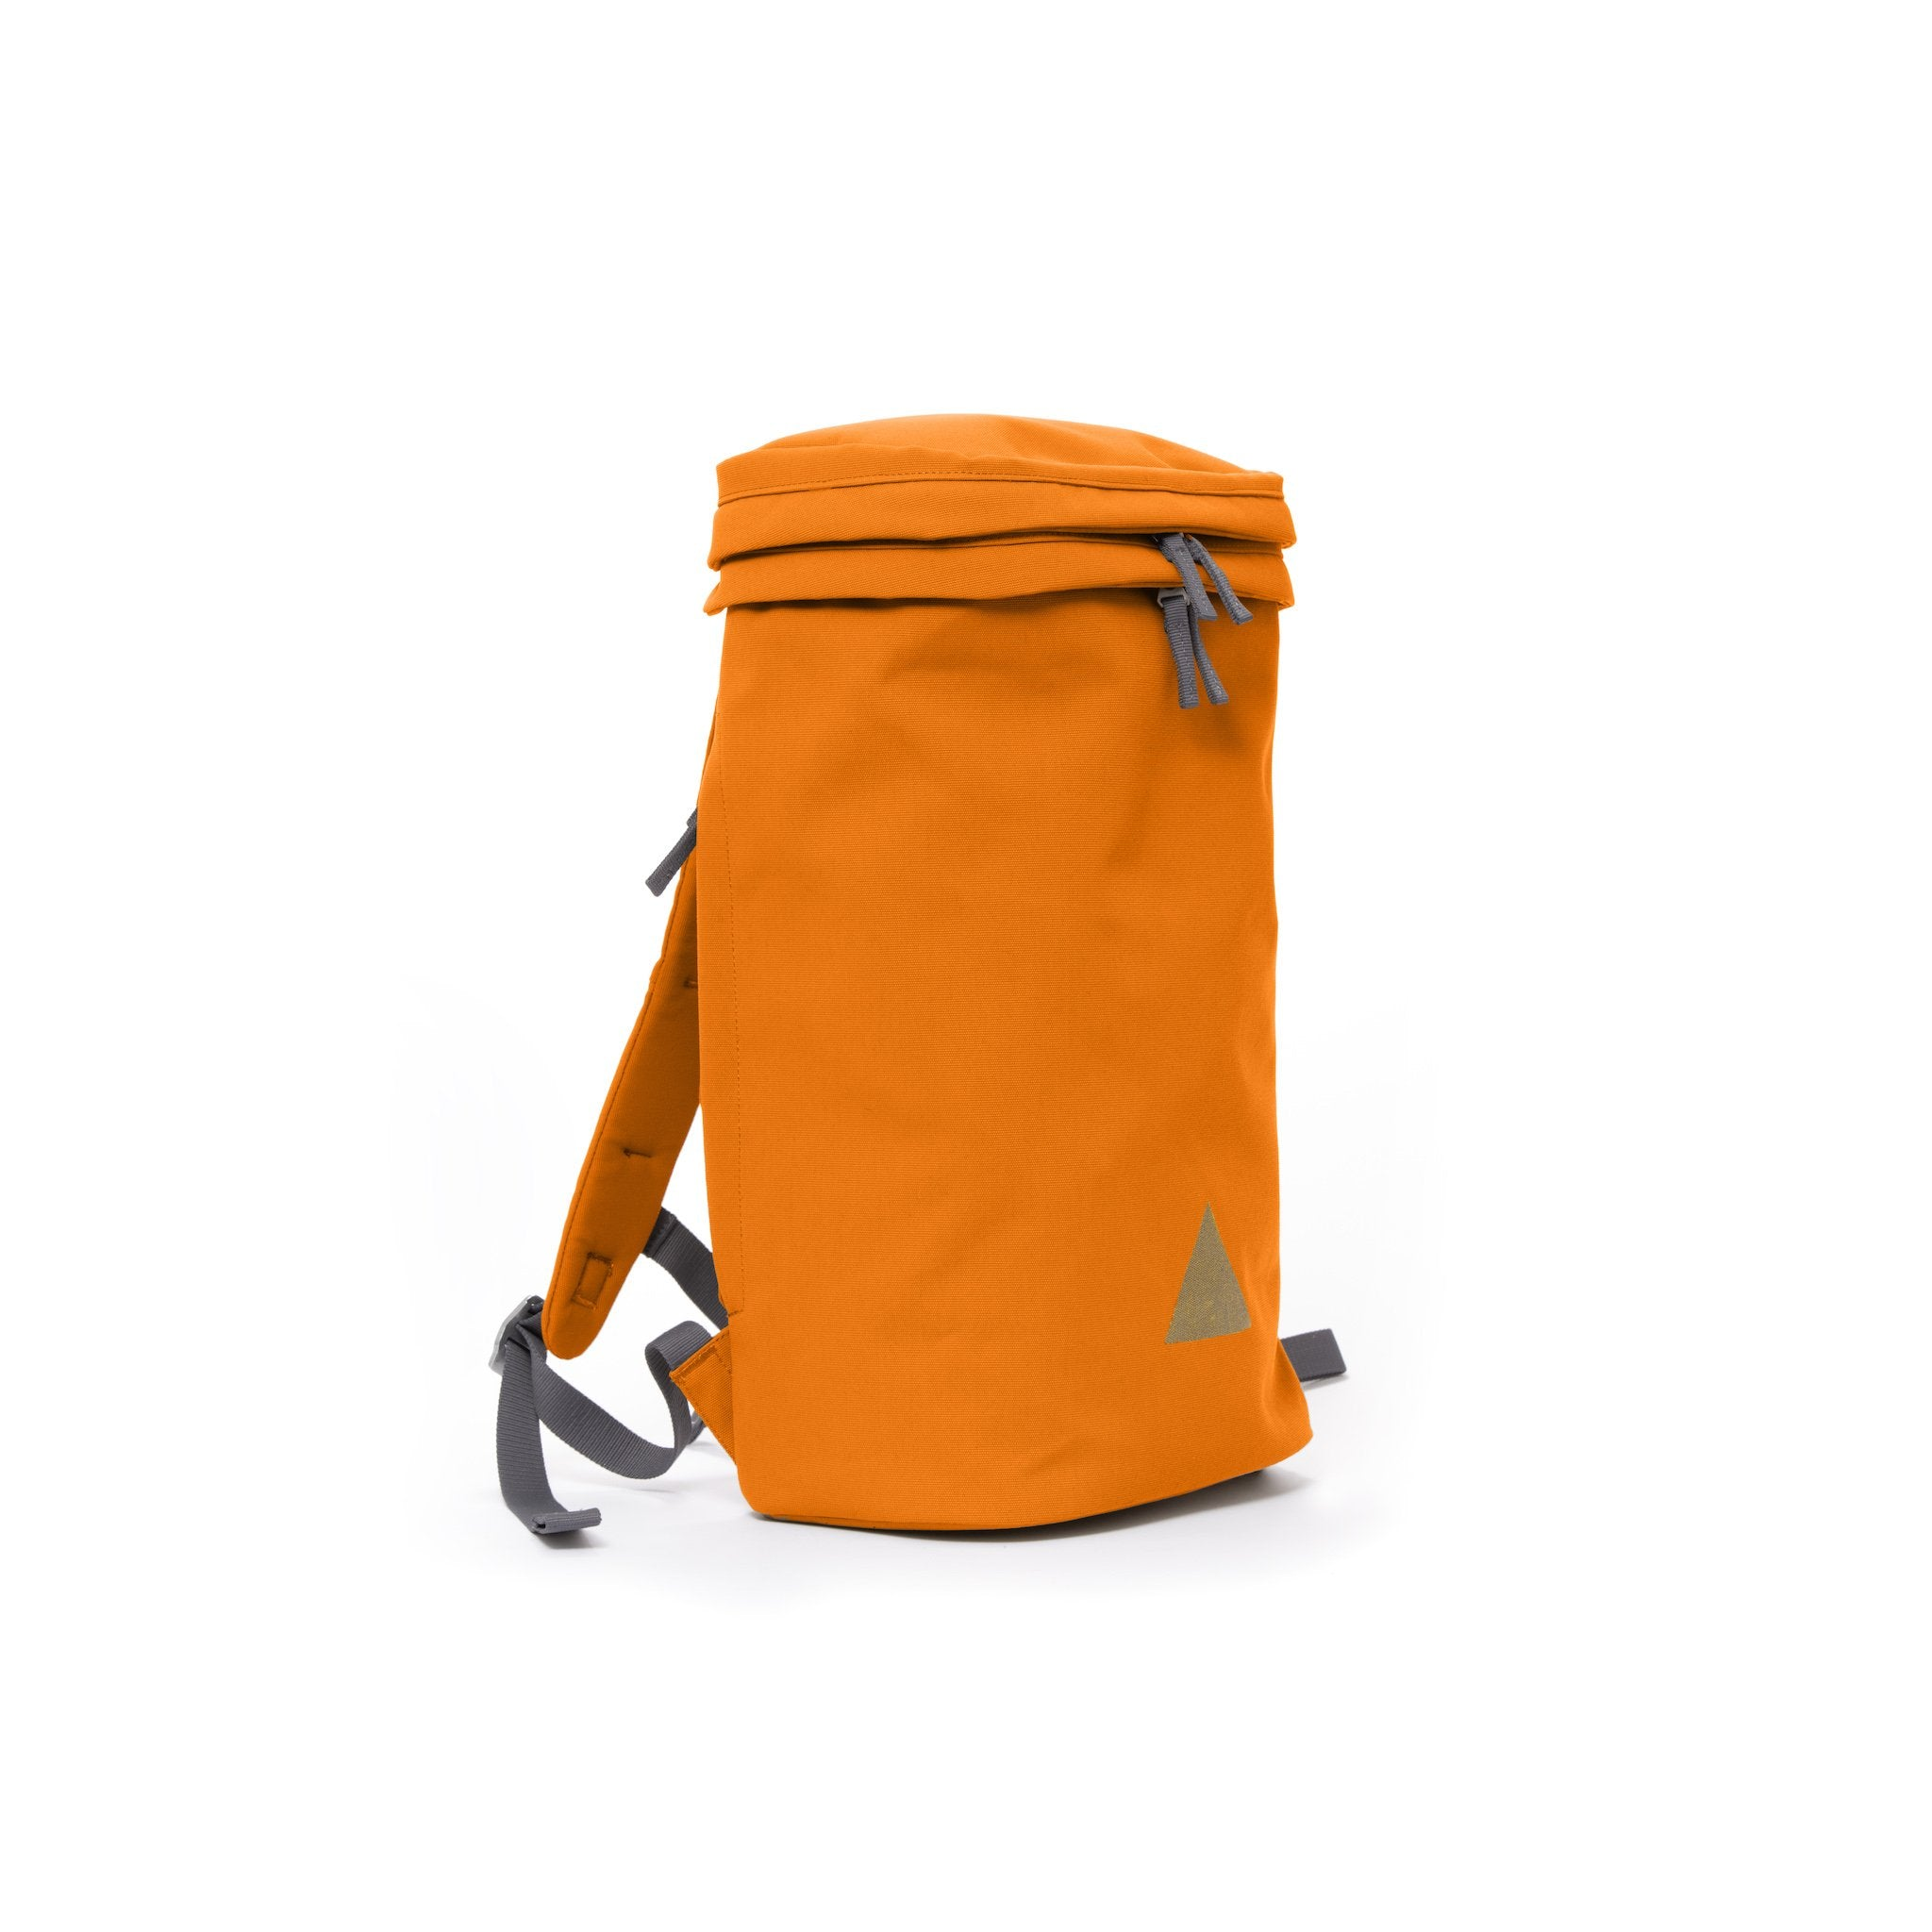 Orange canvas backpack with padded shoulder straps and triangle logo.